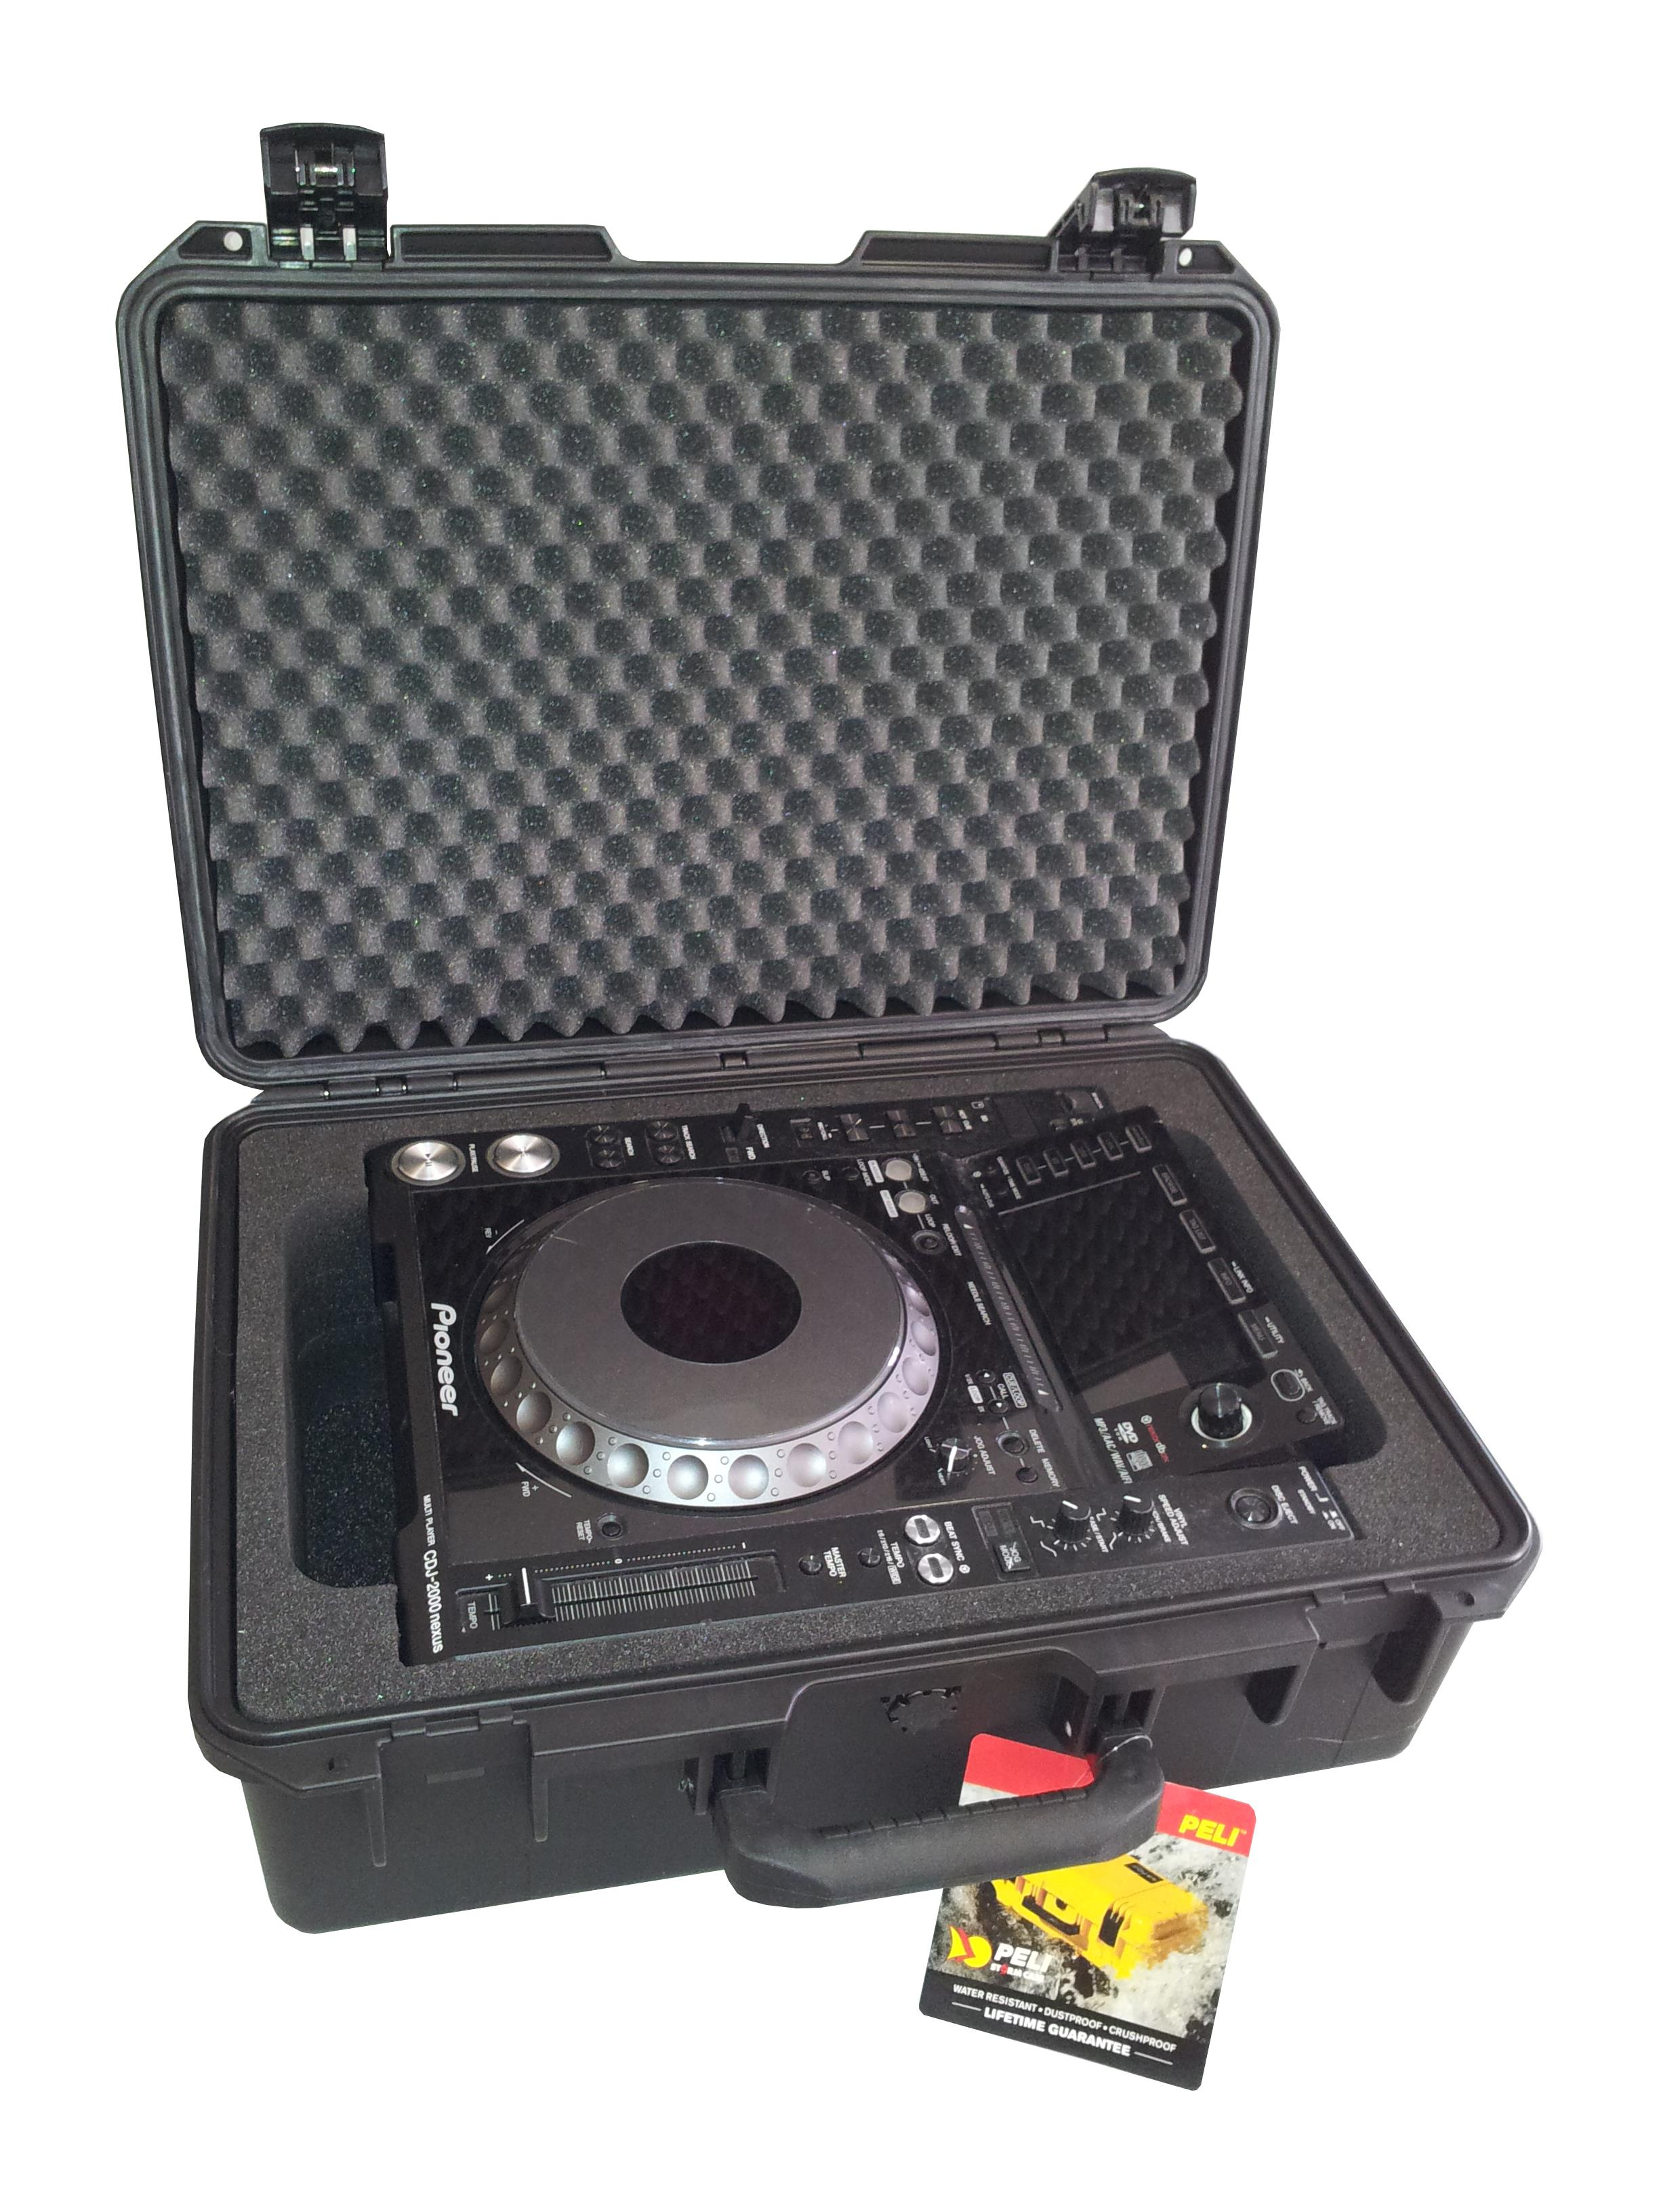 iM2600 tbv Pioneer CDJ2000 nexus CD/MP3 speler